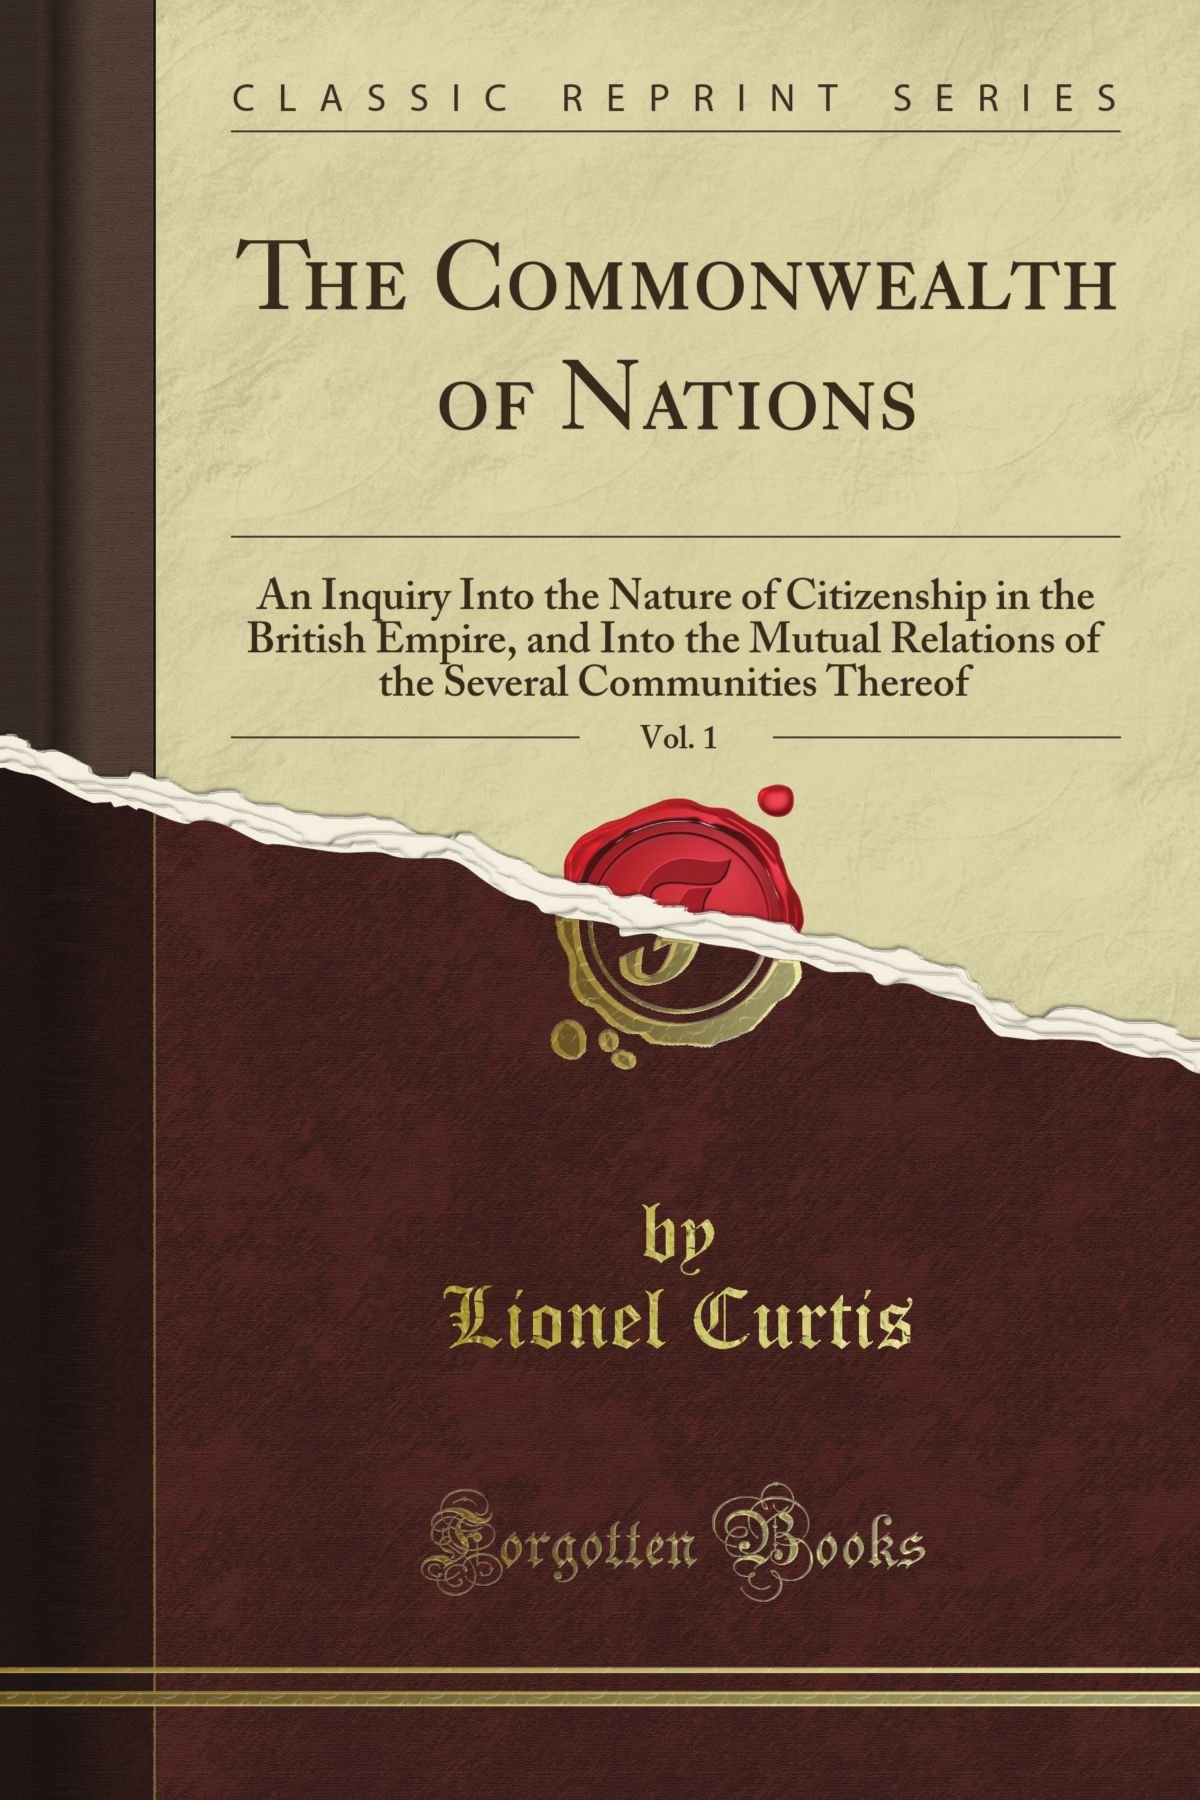 Download The Commonwealth of Nations: An Inquiry Into the Nature of Citizenship in the British Empire, and Into the Mutual Relations of the Several Communities Thereof, Vol. 1 (Classic Reprint) pdf epub